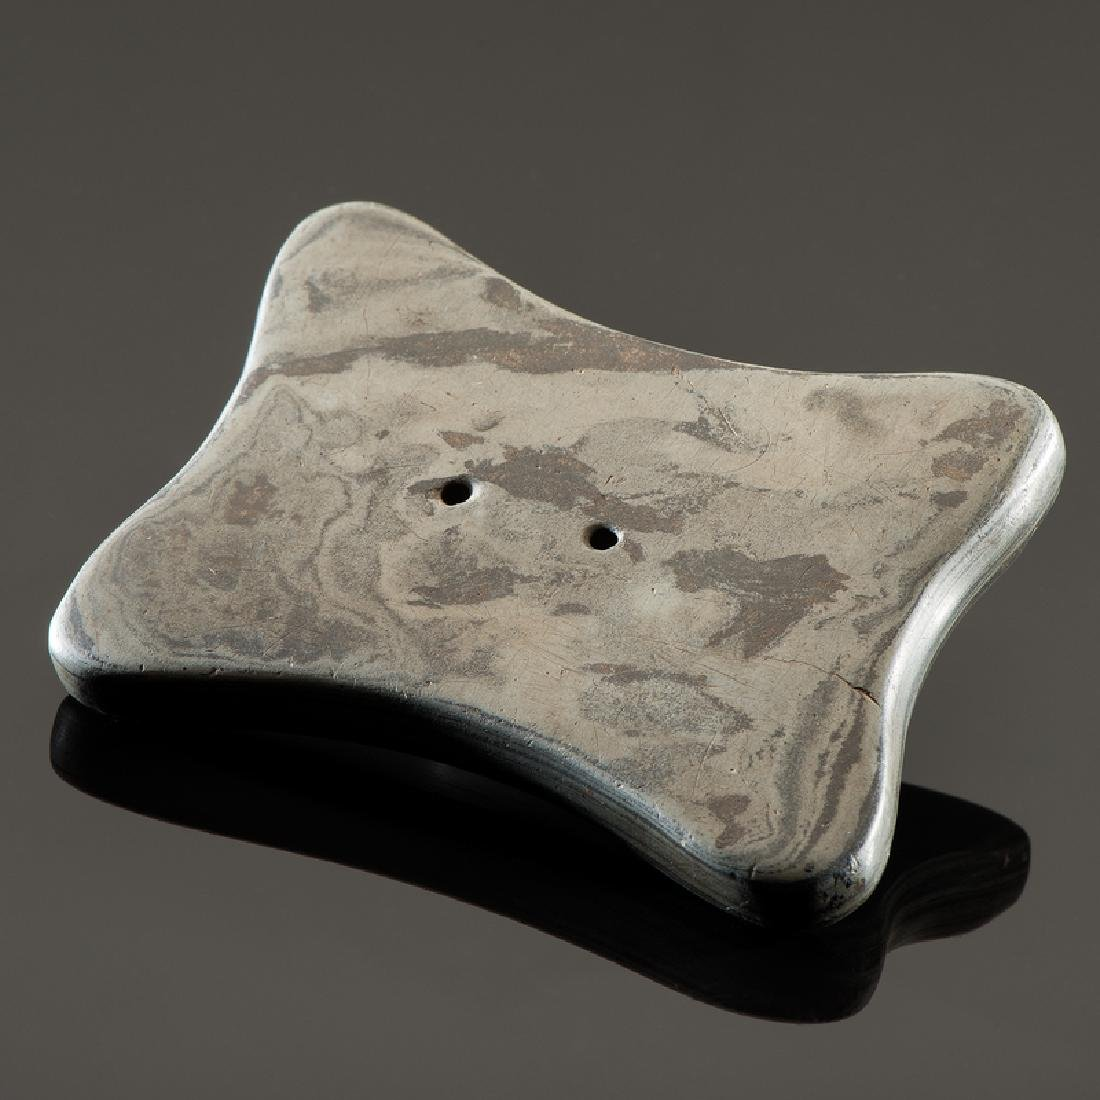 A Quadraconcave Slate Gorget, From the Collection of